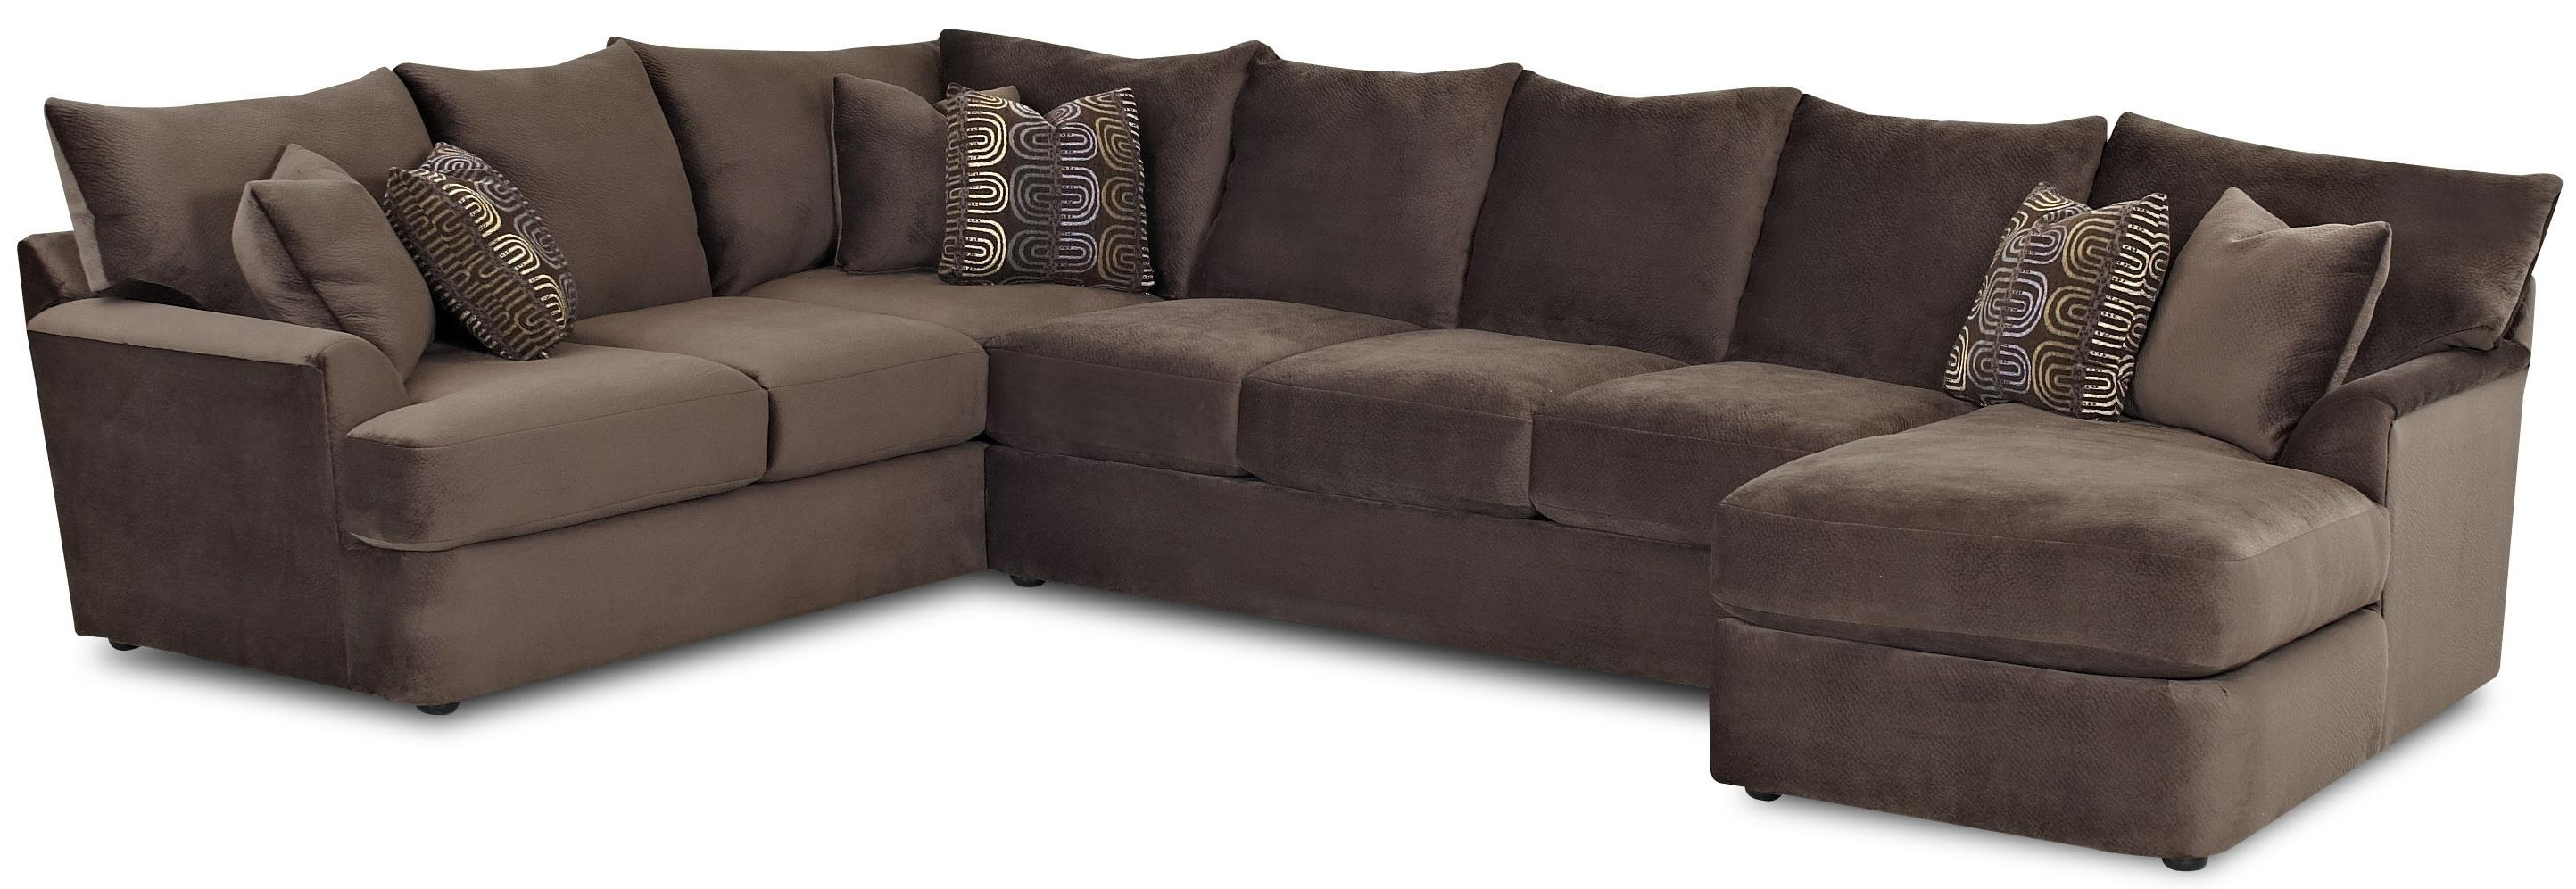 Best And Newest Sofa With Chaise Lounge (View 12 of 15)